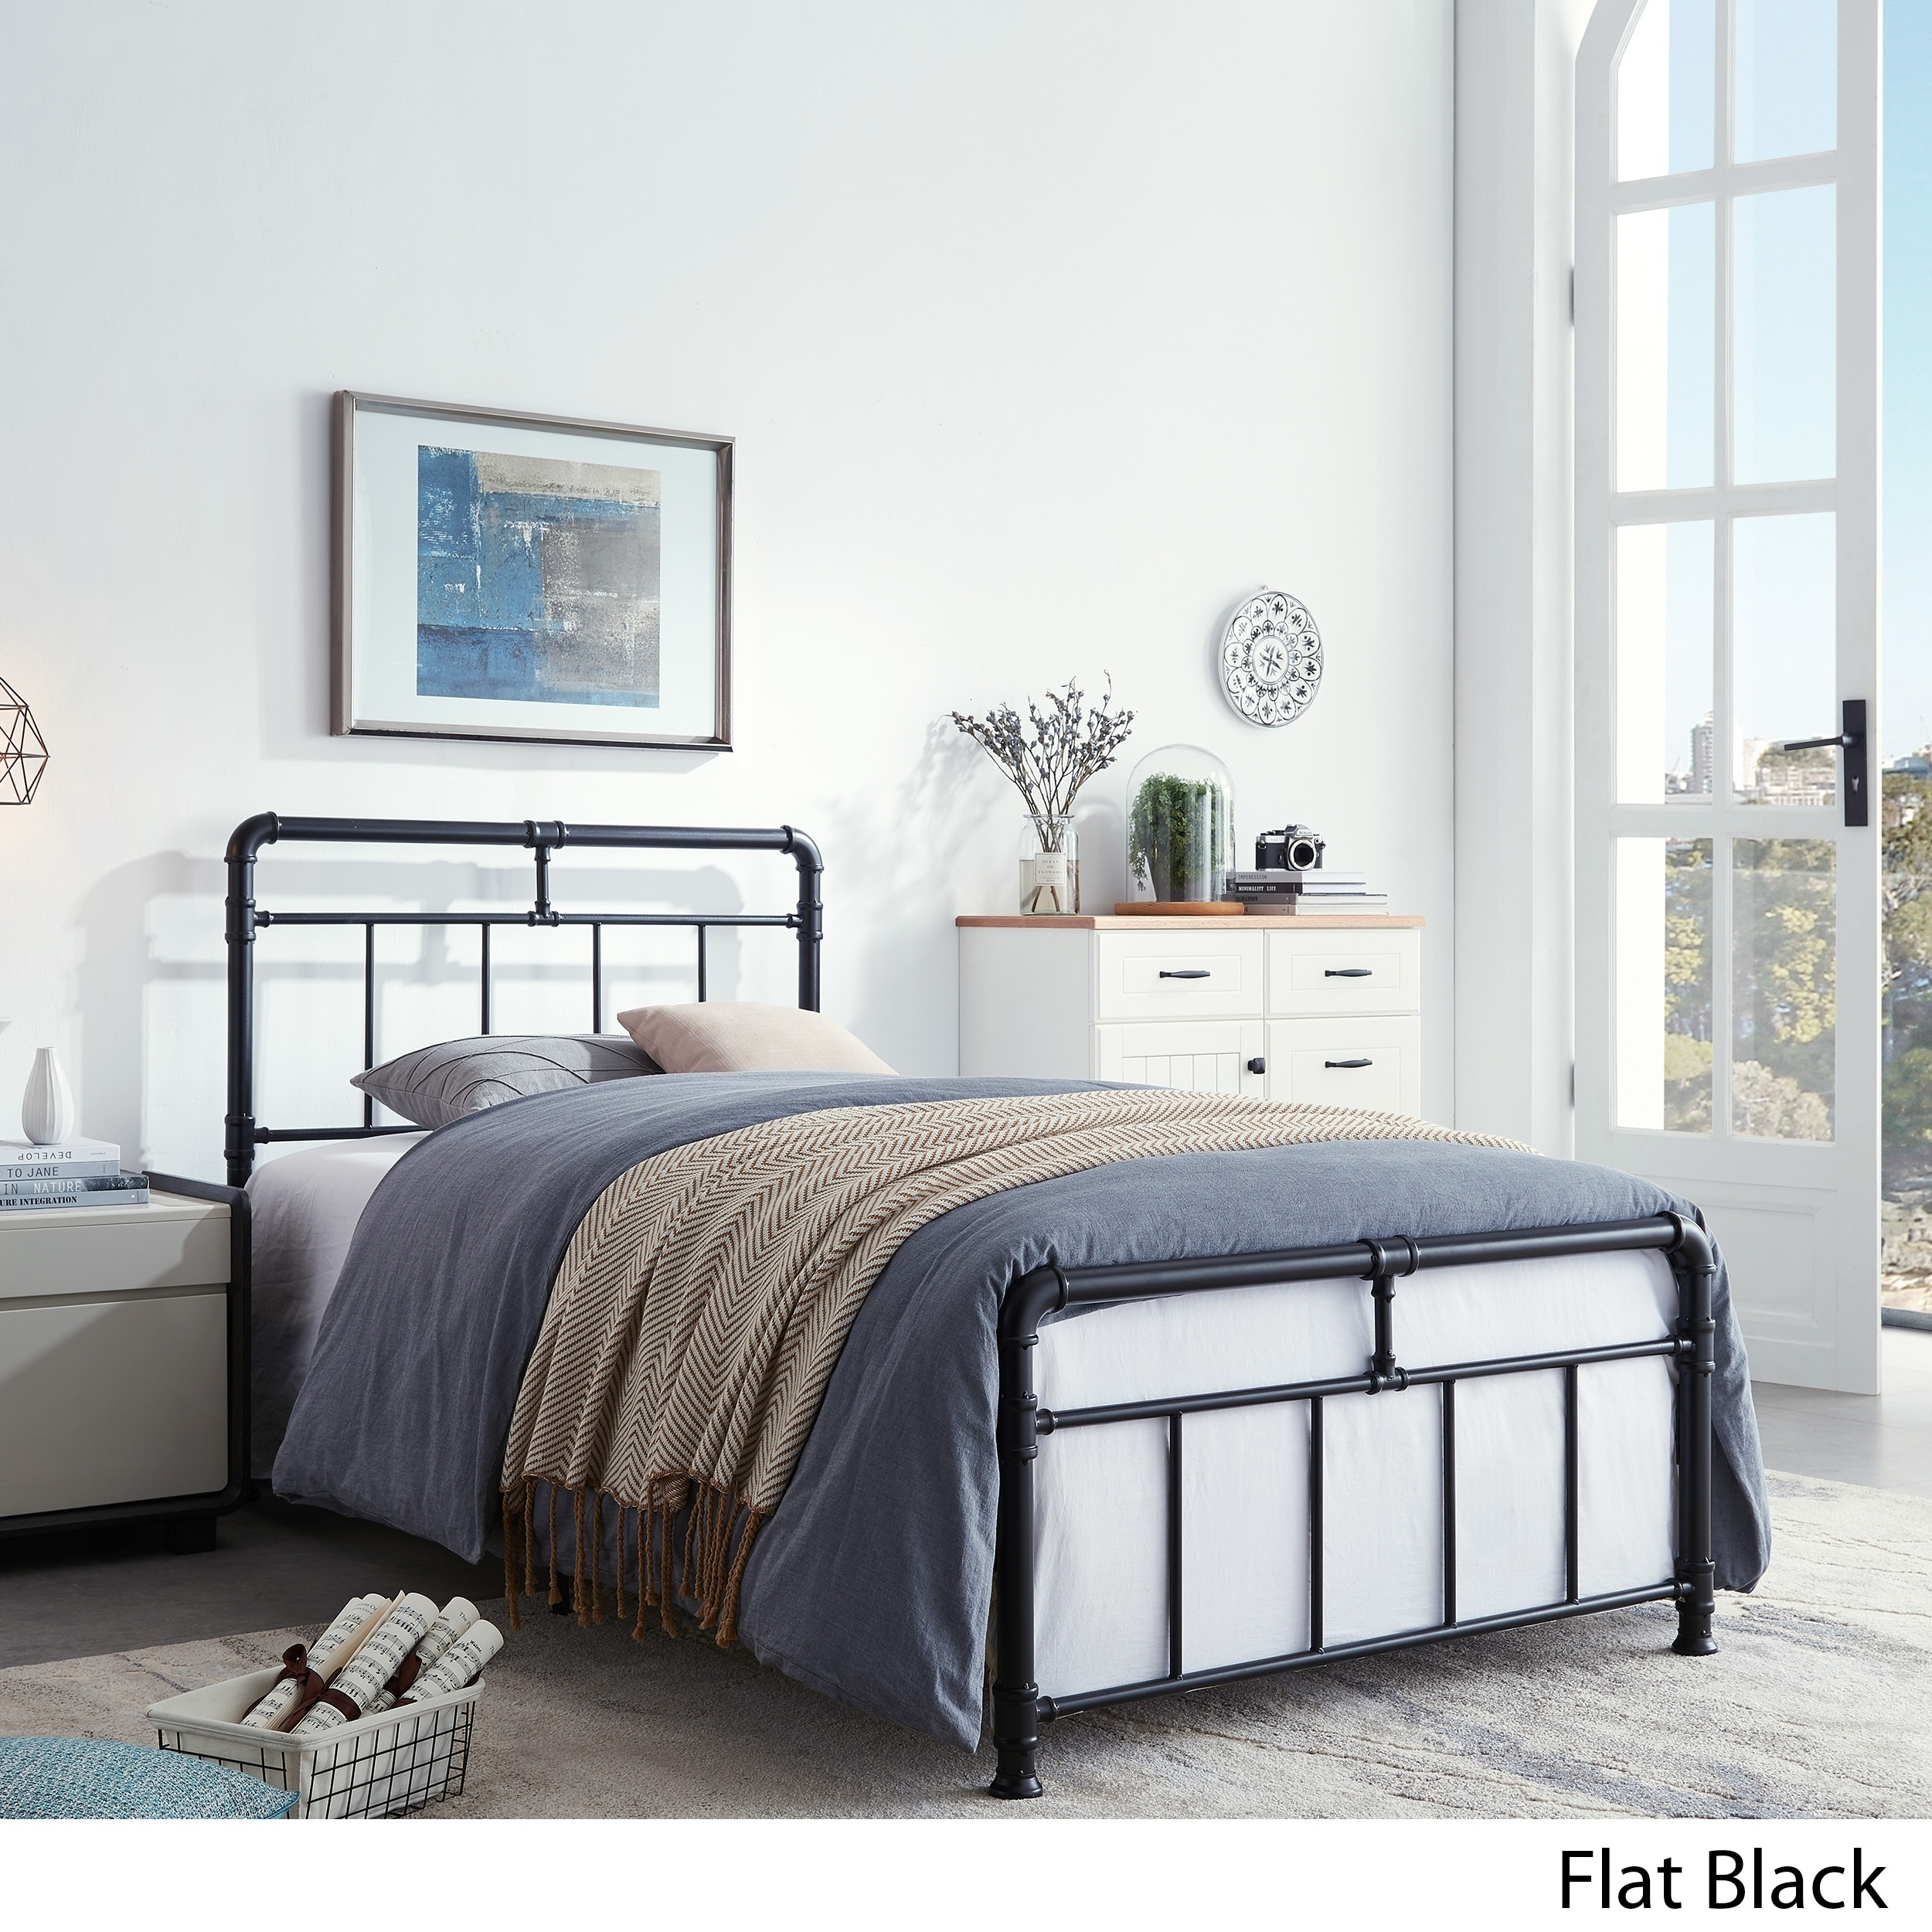 Mowry Industrial Iron Twin Bed Frame By Christopher Knight Home Overstock 30148022